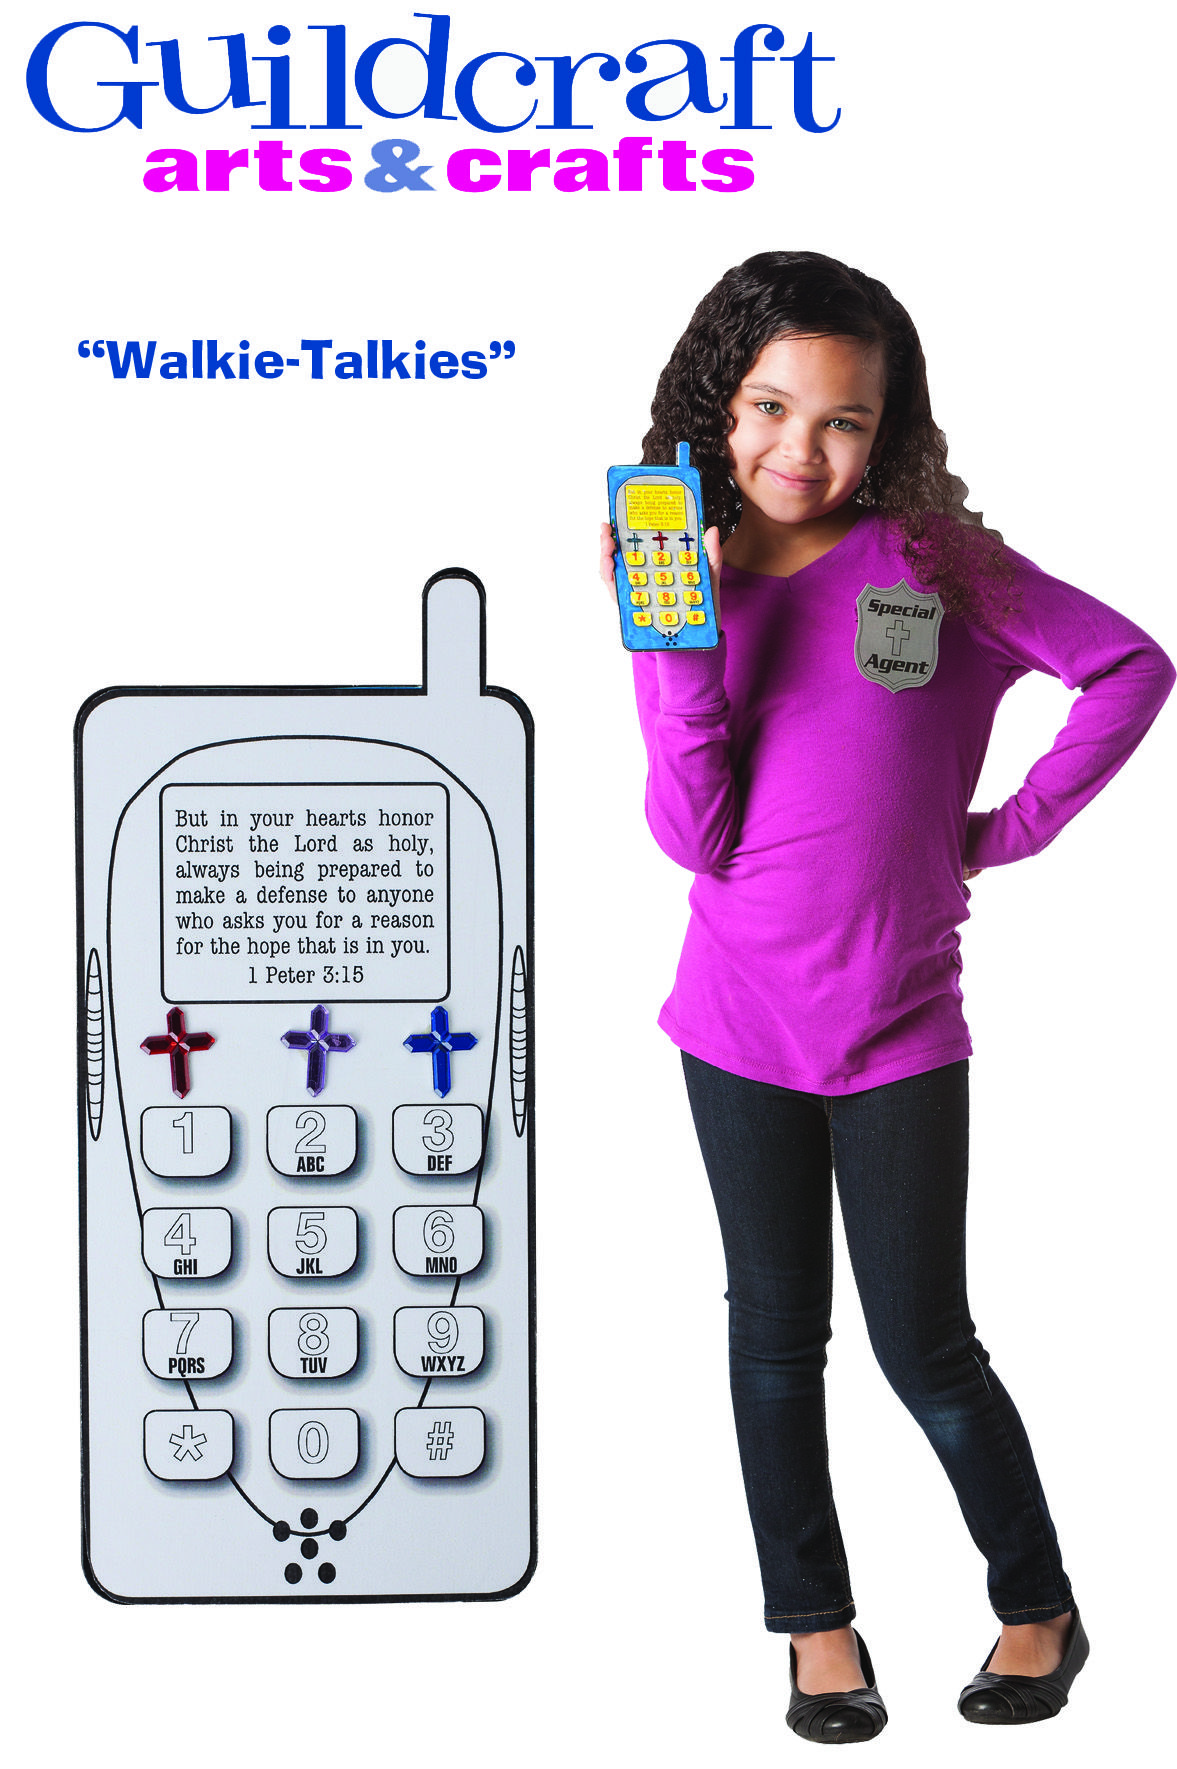 Walkie-Talkies from Guildcraft Arts & Crafts! Agents can use these